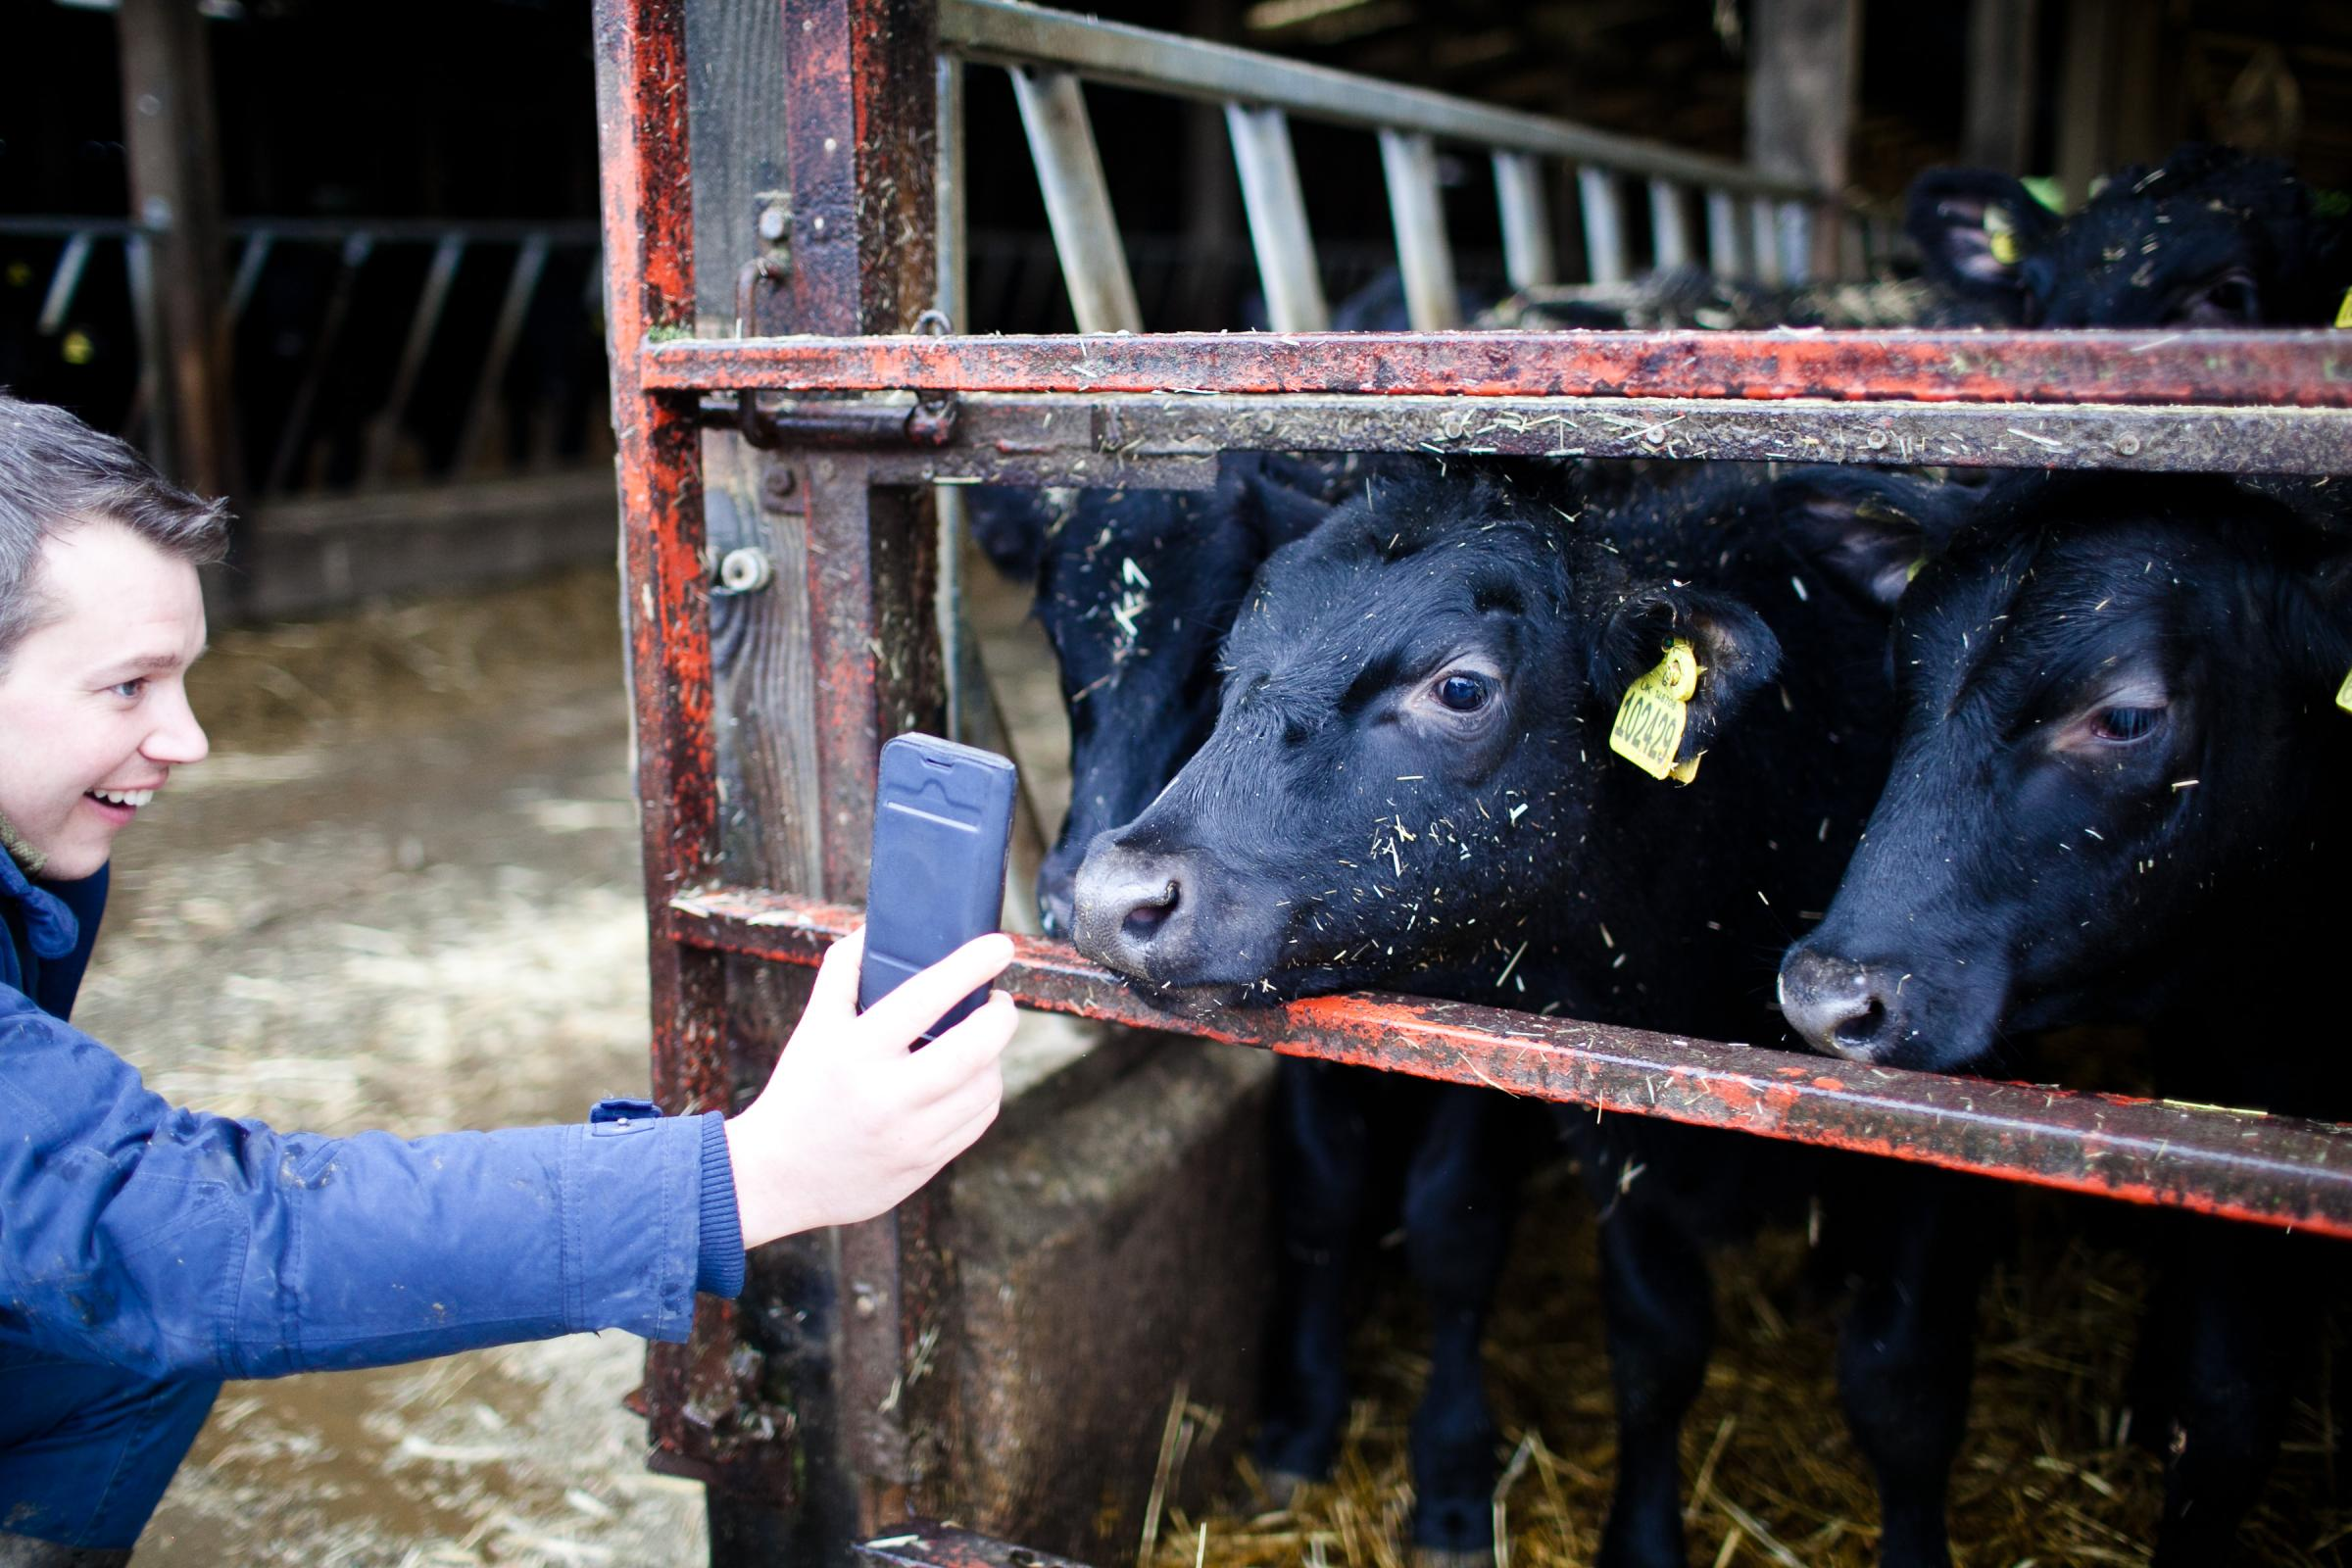 Tudder is a new dating app for cattle